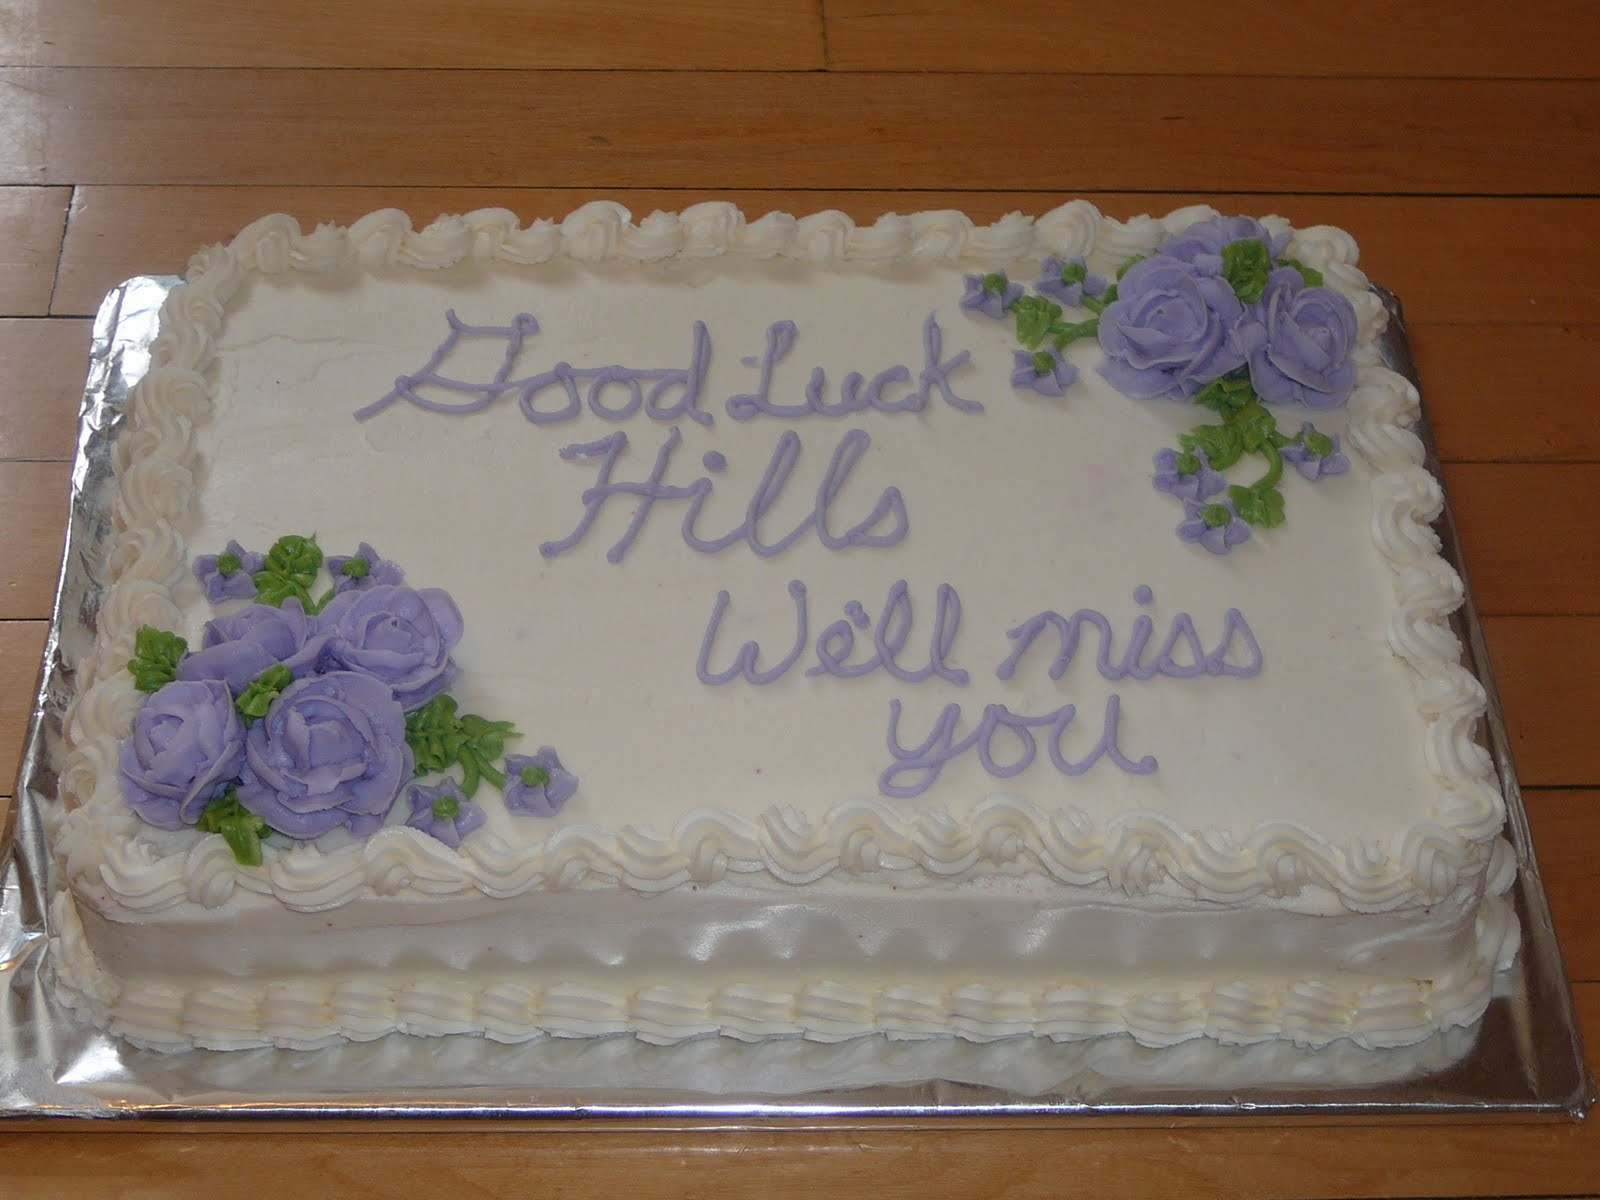 Pin Goodbye Cake Cakes Cake on Pinterest